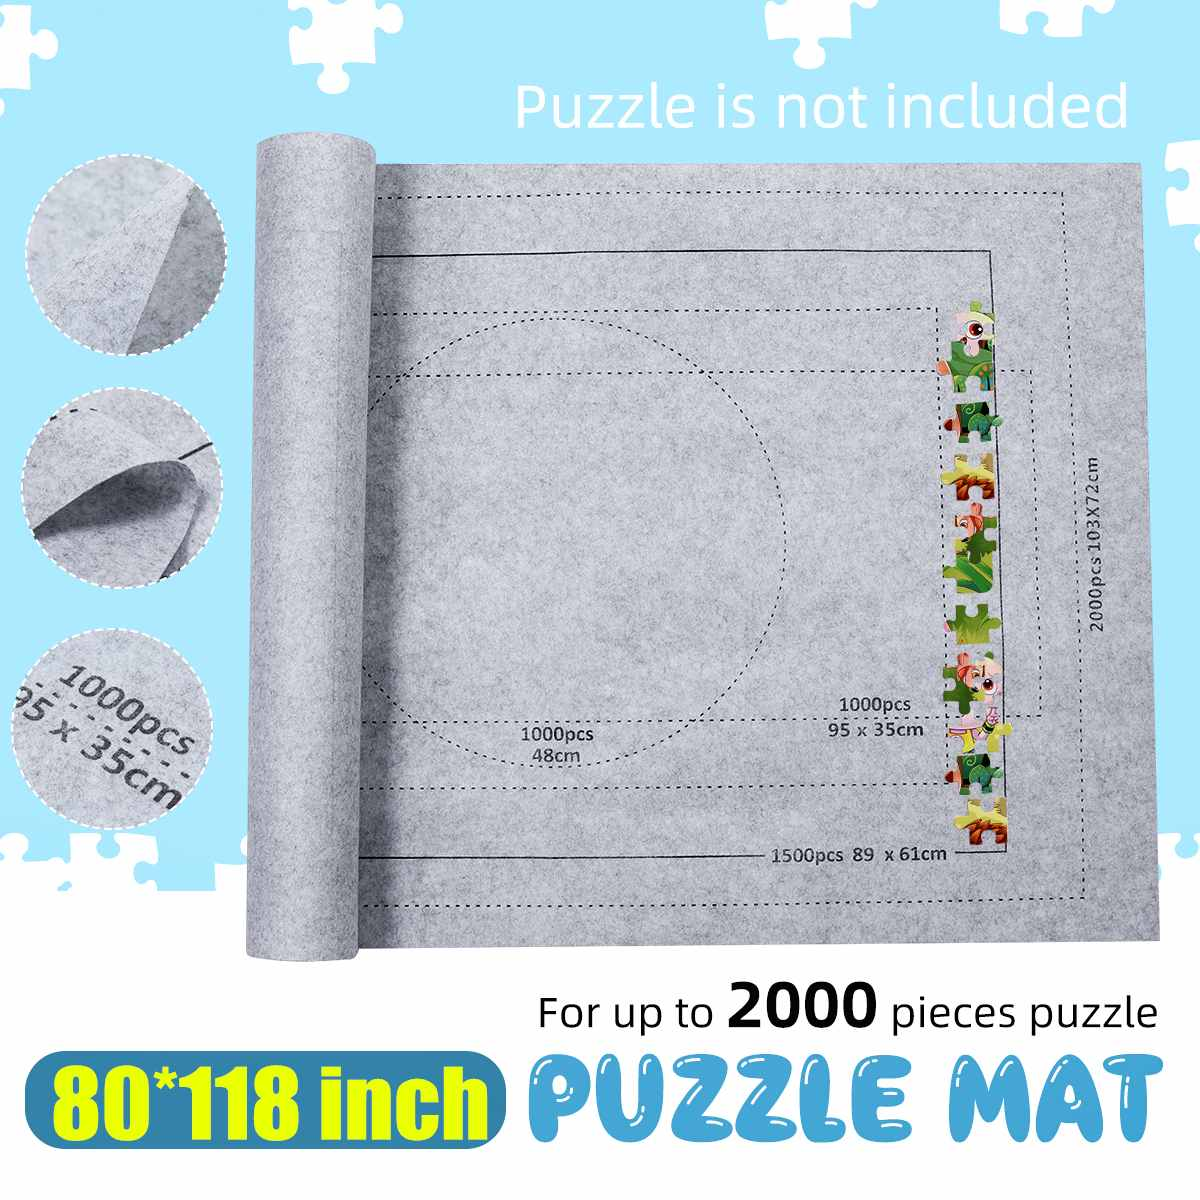 80*118 Inch Jigsaw Puzzle Mat Puzzles Blanket  Roll Up Puzzle Roll Felt For Up To 2000pcs Puzzle Travel Storage Bag Accessories